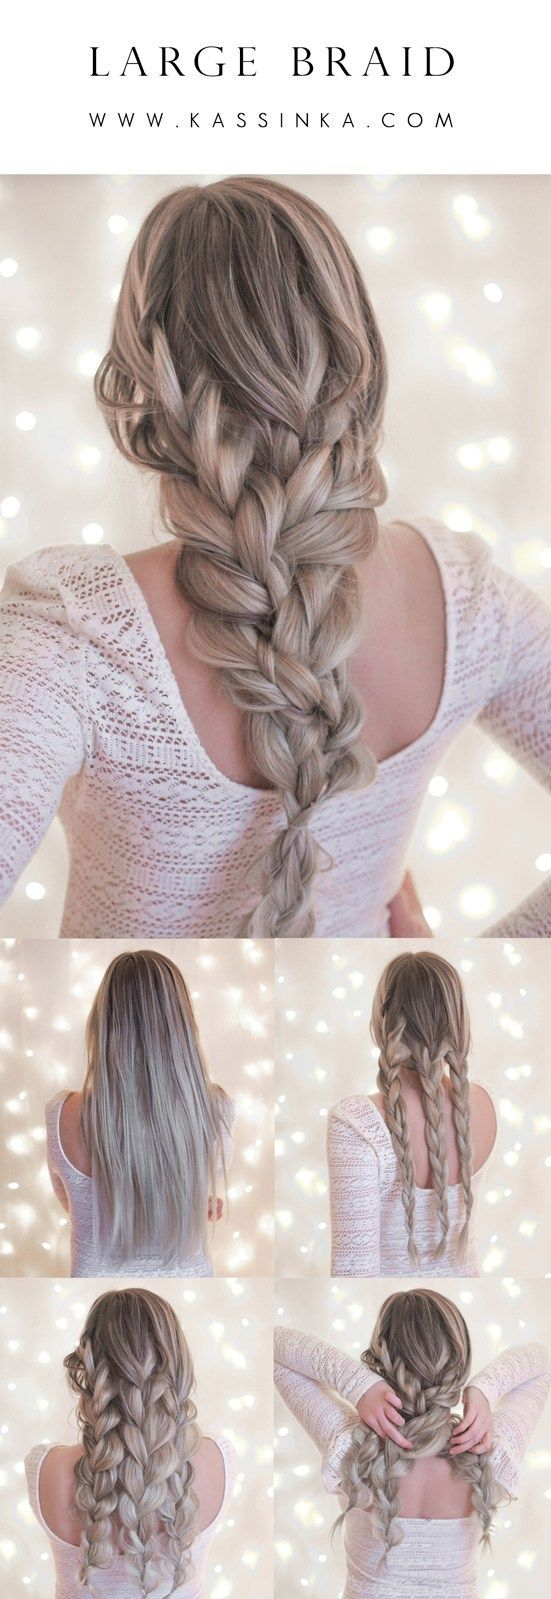 This simple style takes the standard braid look to something that